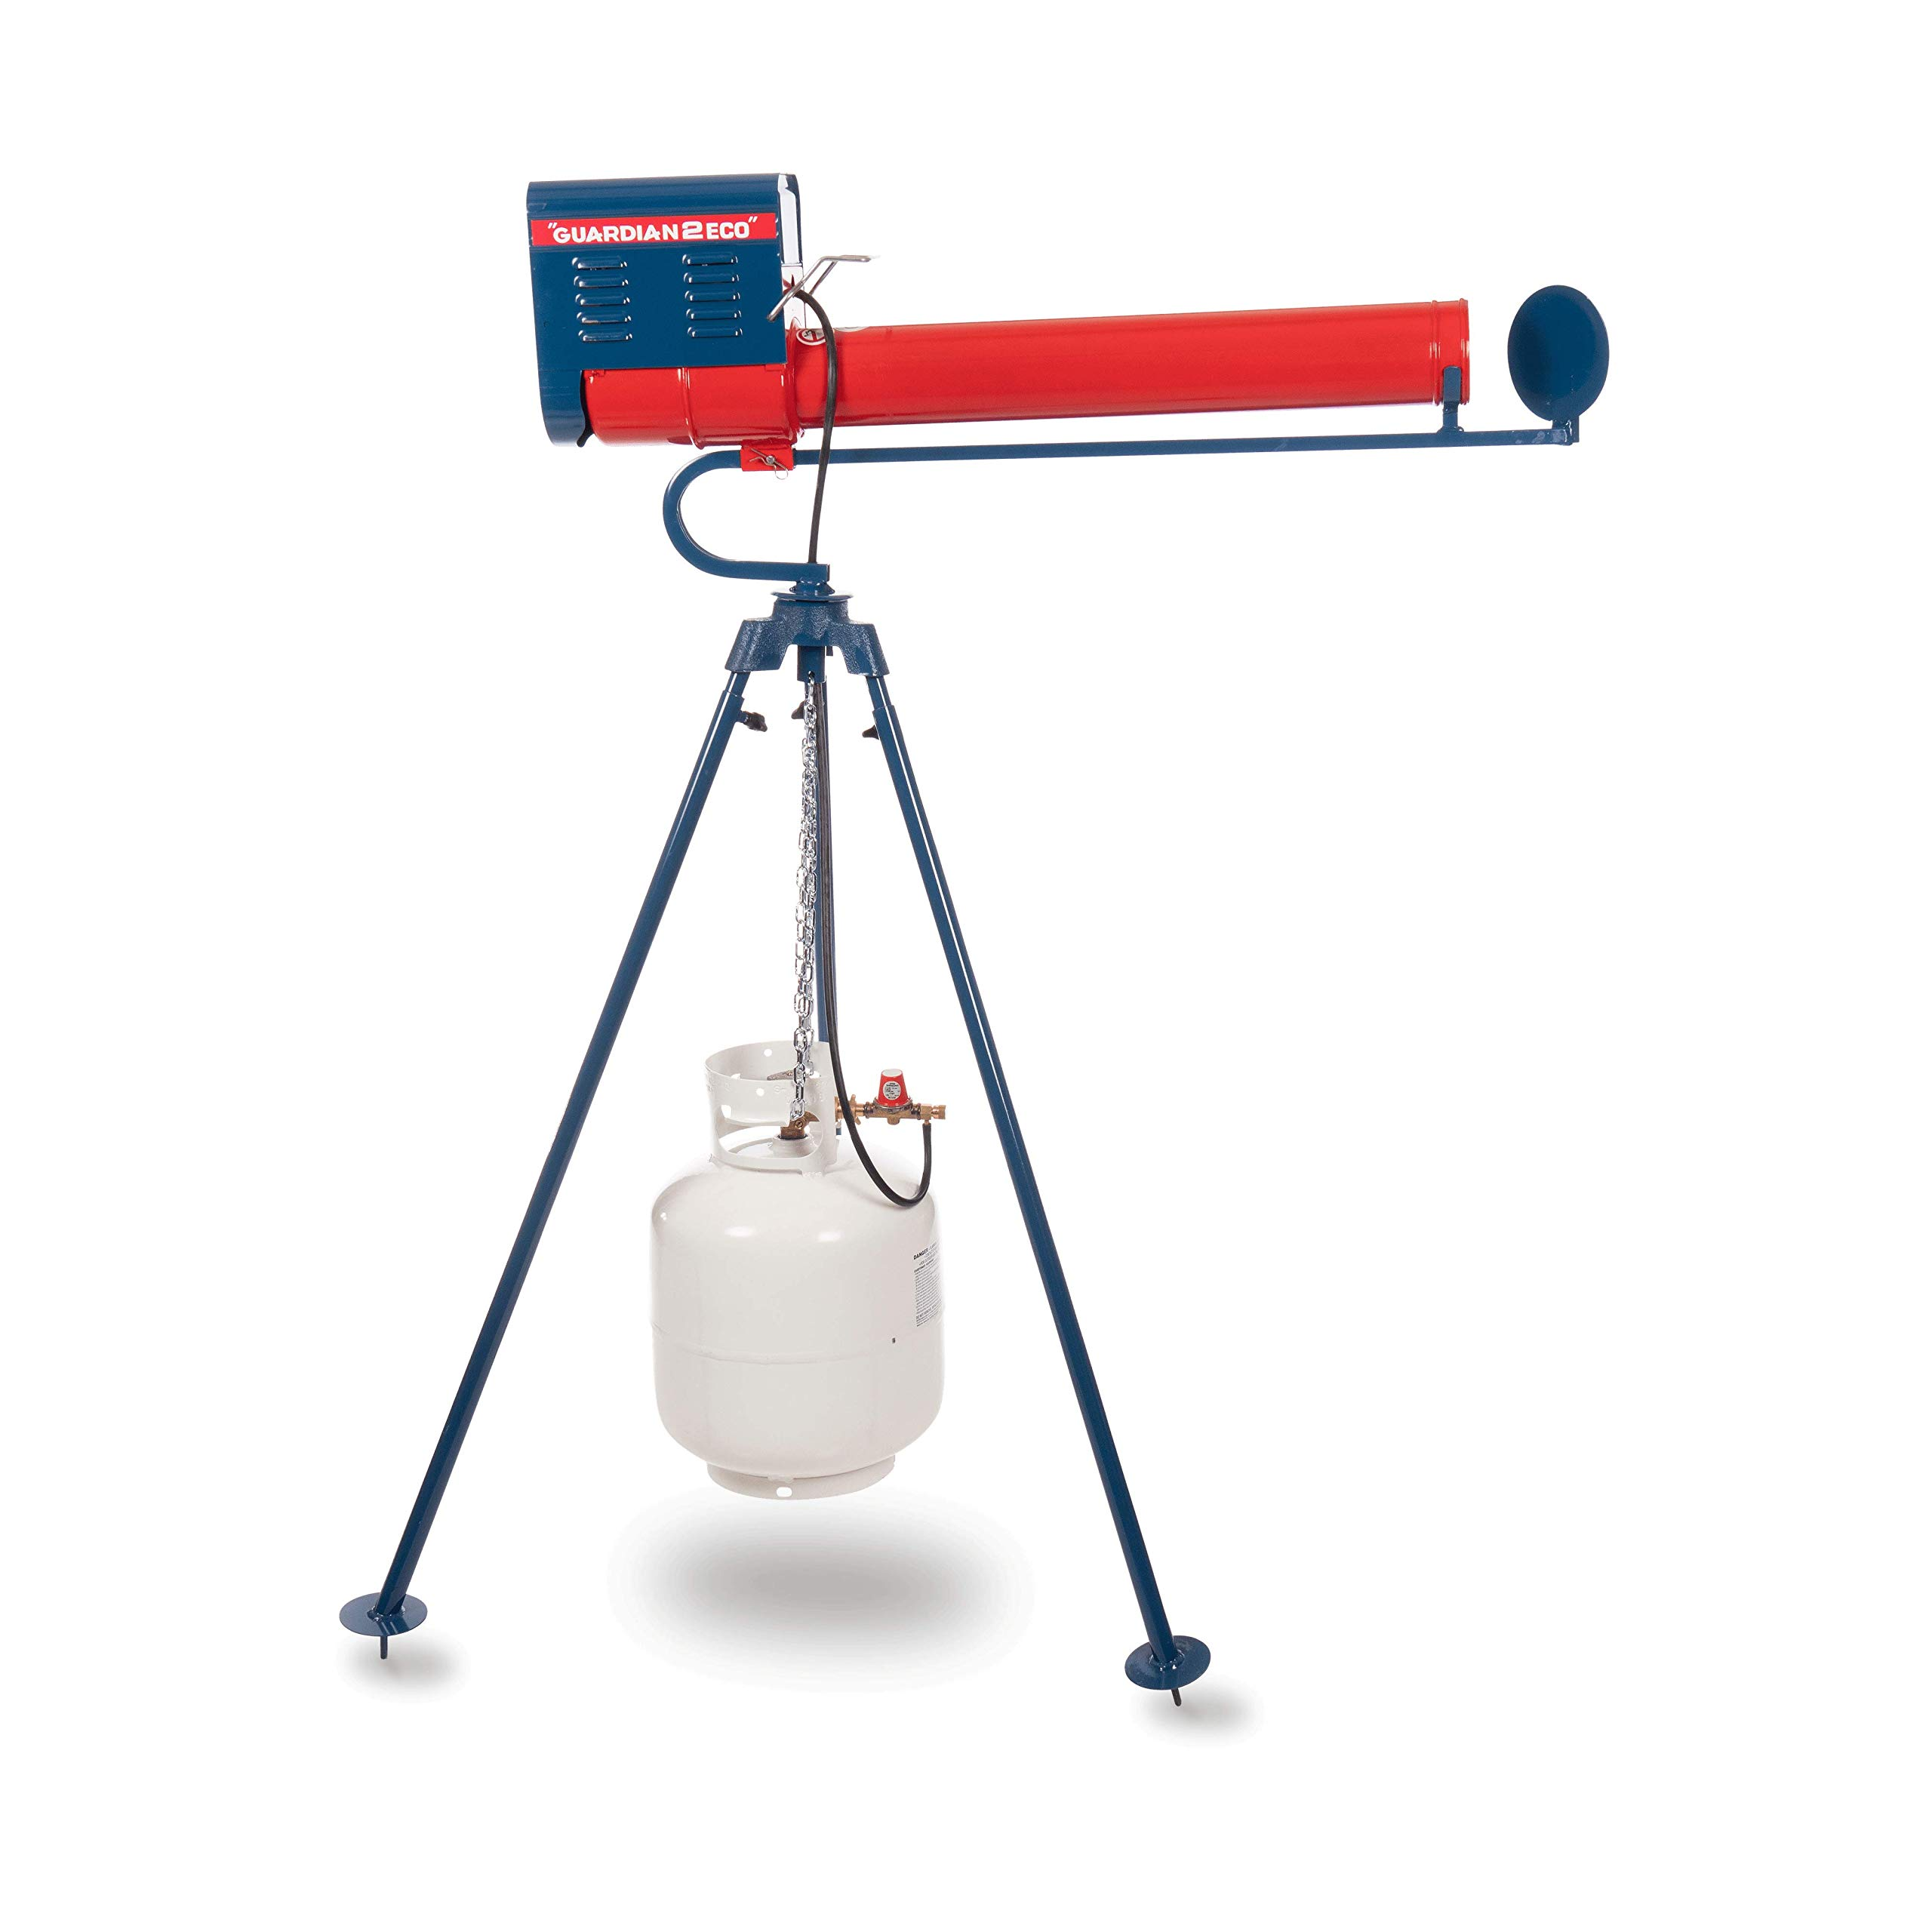 Good Life, Inc. Guardian G2 Single Rotary Propane Scare Cannon with 5-ft. Tripod - Perfect for Industrial & Agricultural Applications by Good Life, Inc.